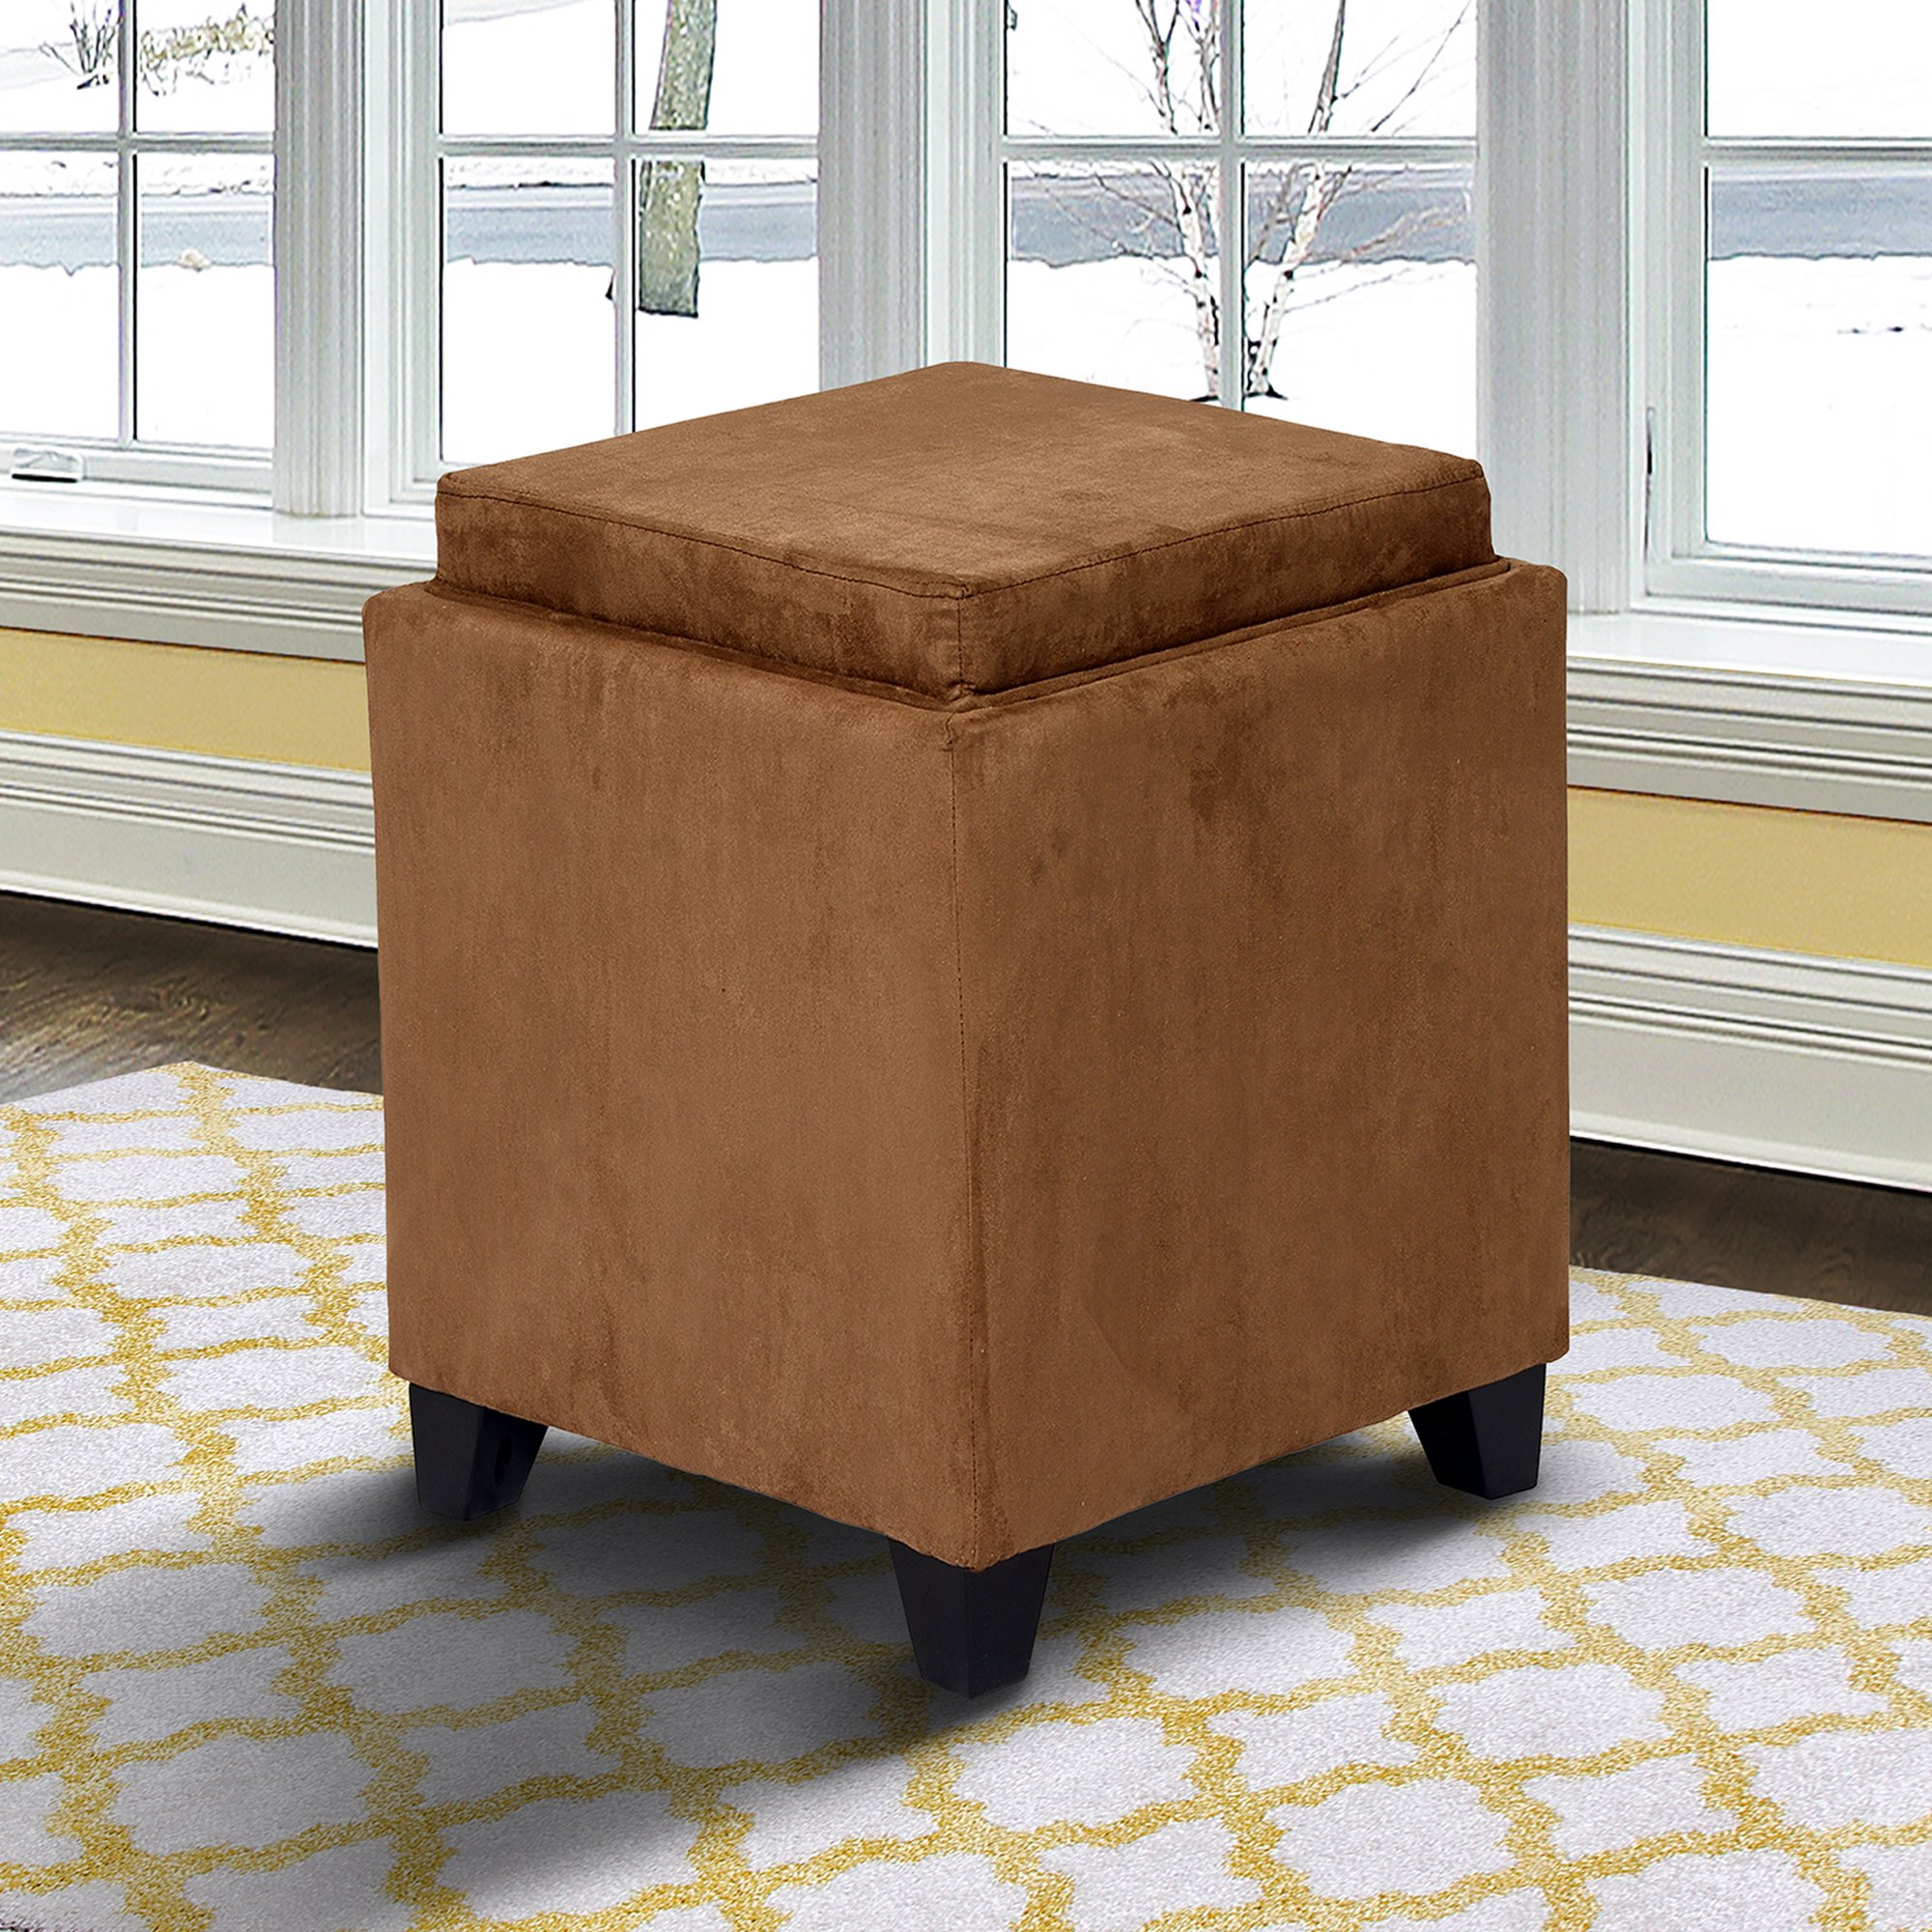 Armen Living LC530OTMFBR Rainbow Ottoman in Brown and Black Wood Finish